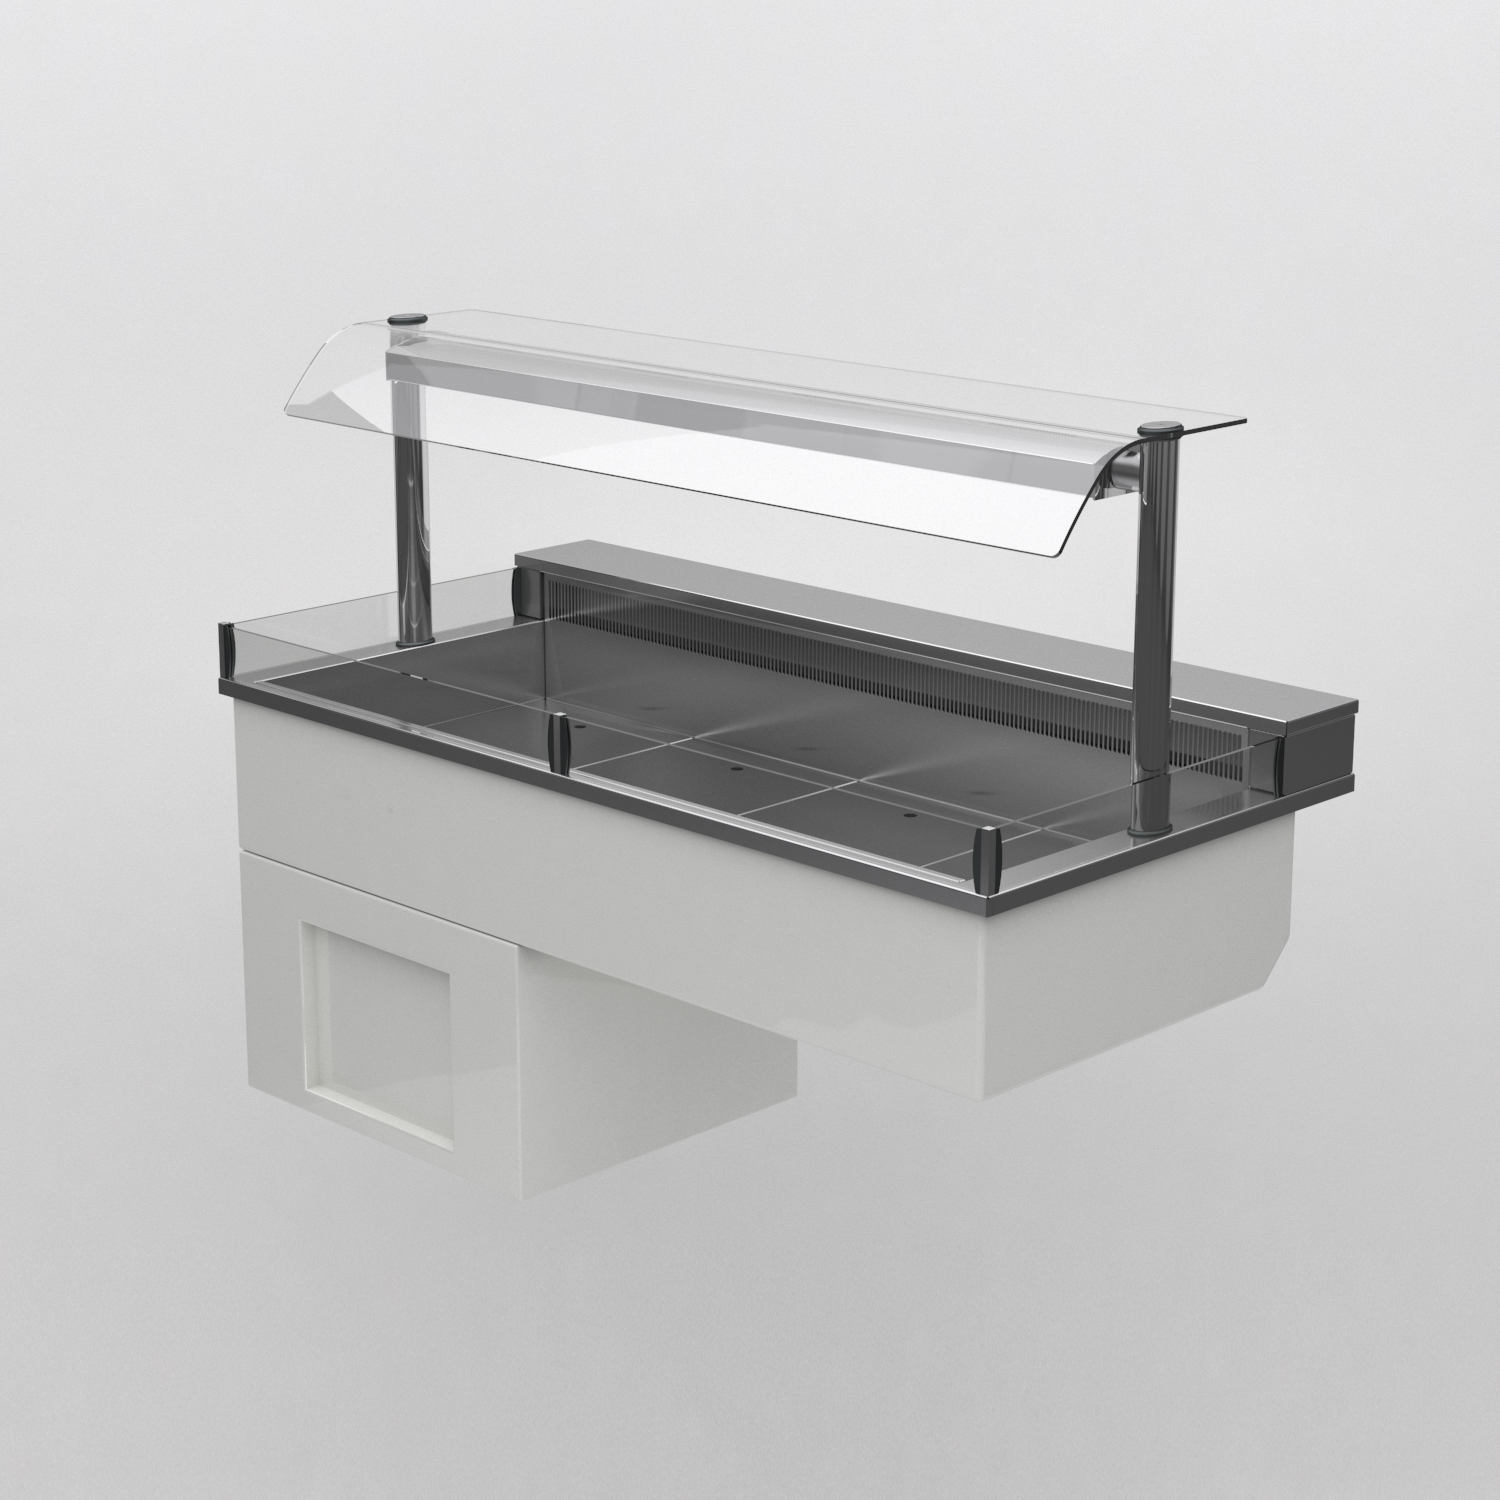 integrale - ICDK4-GO - Chilled Display Deck